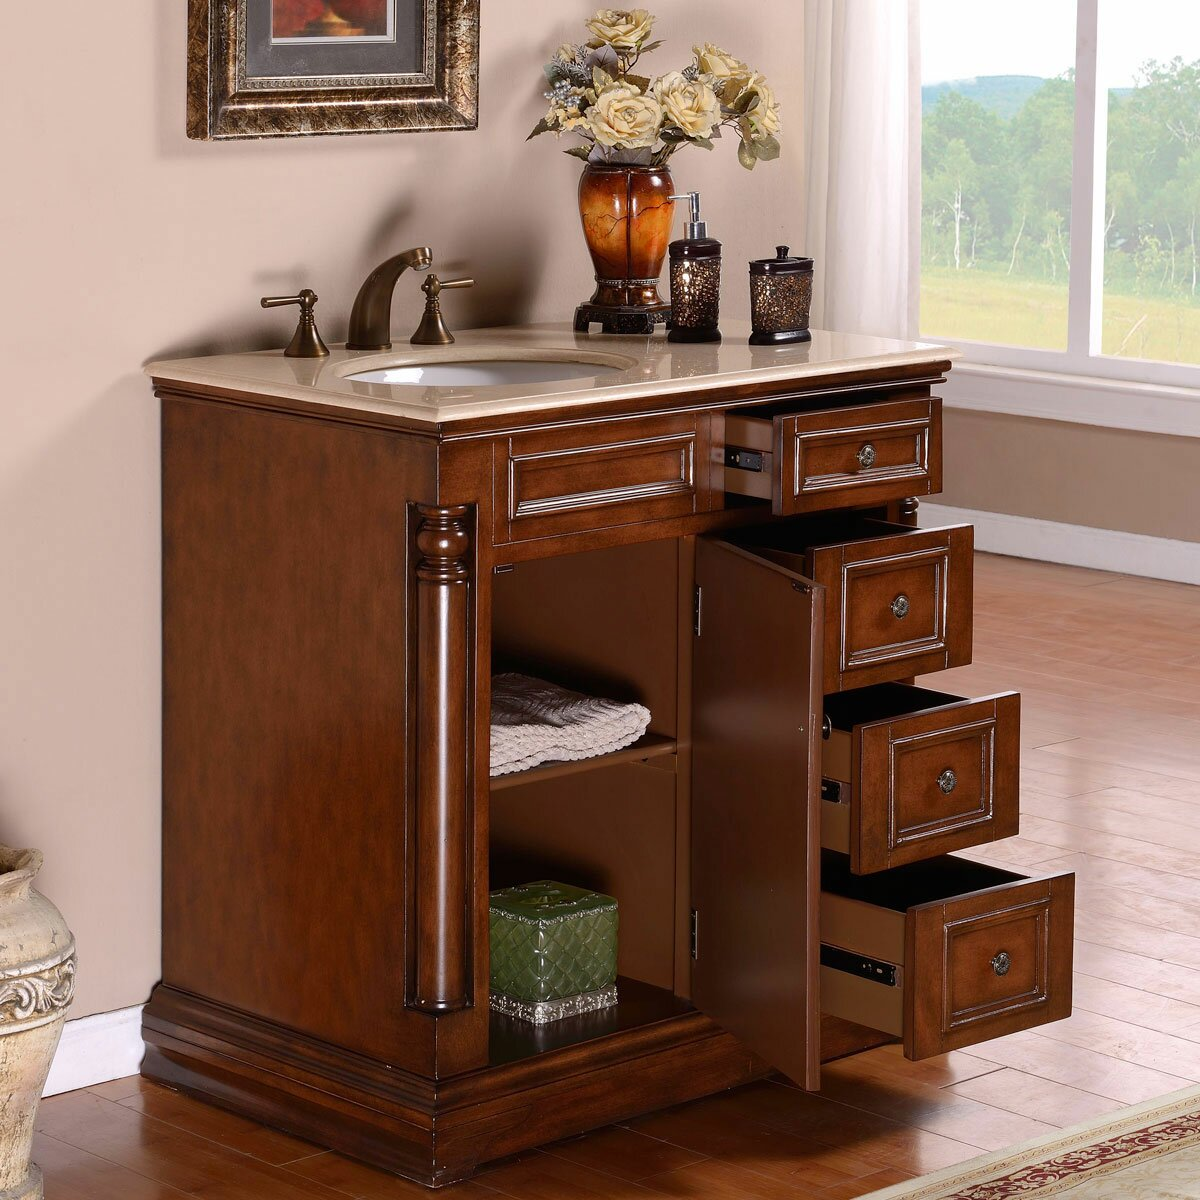 Ensemble Vanite Armoire : Quot single sink cabinet bathroom vanity set wayfair